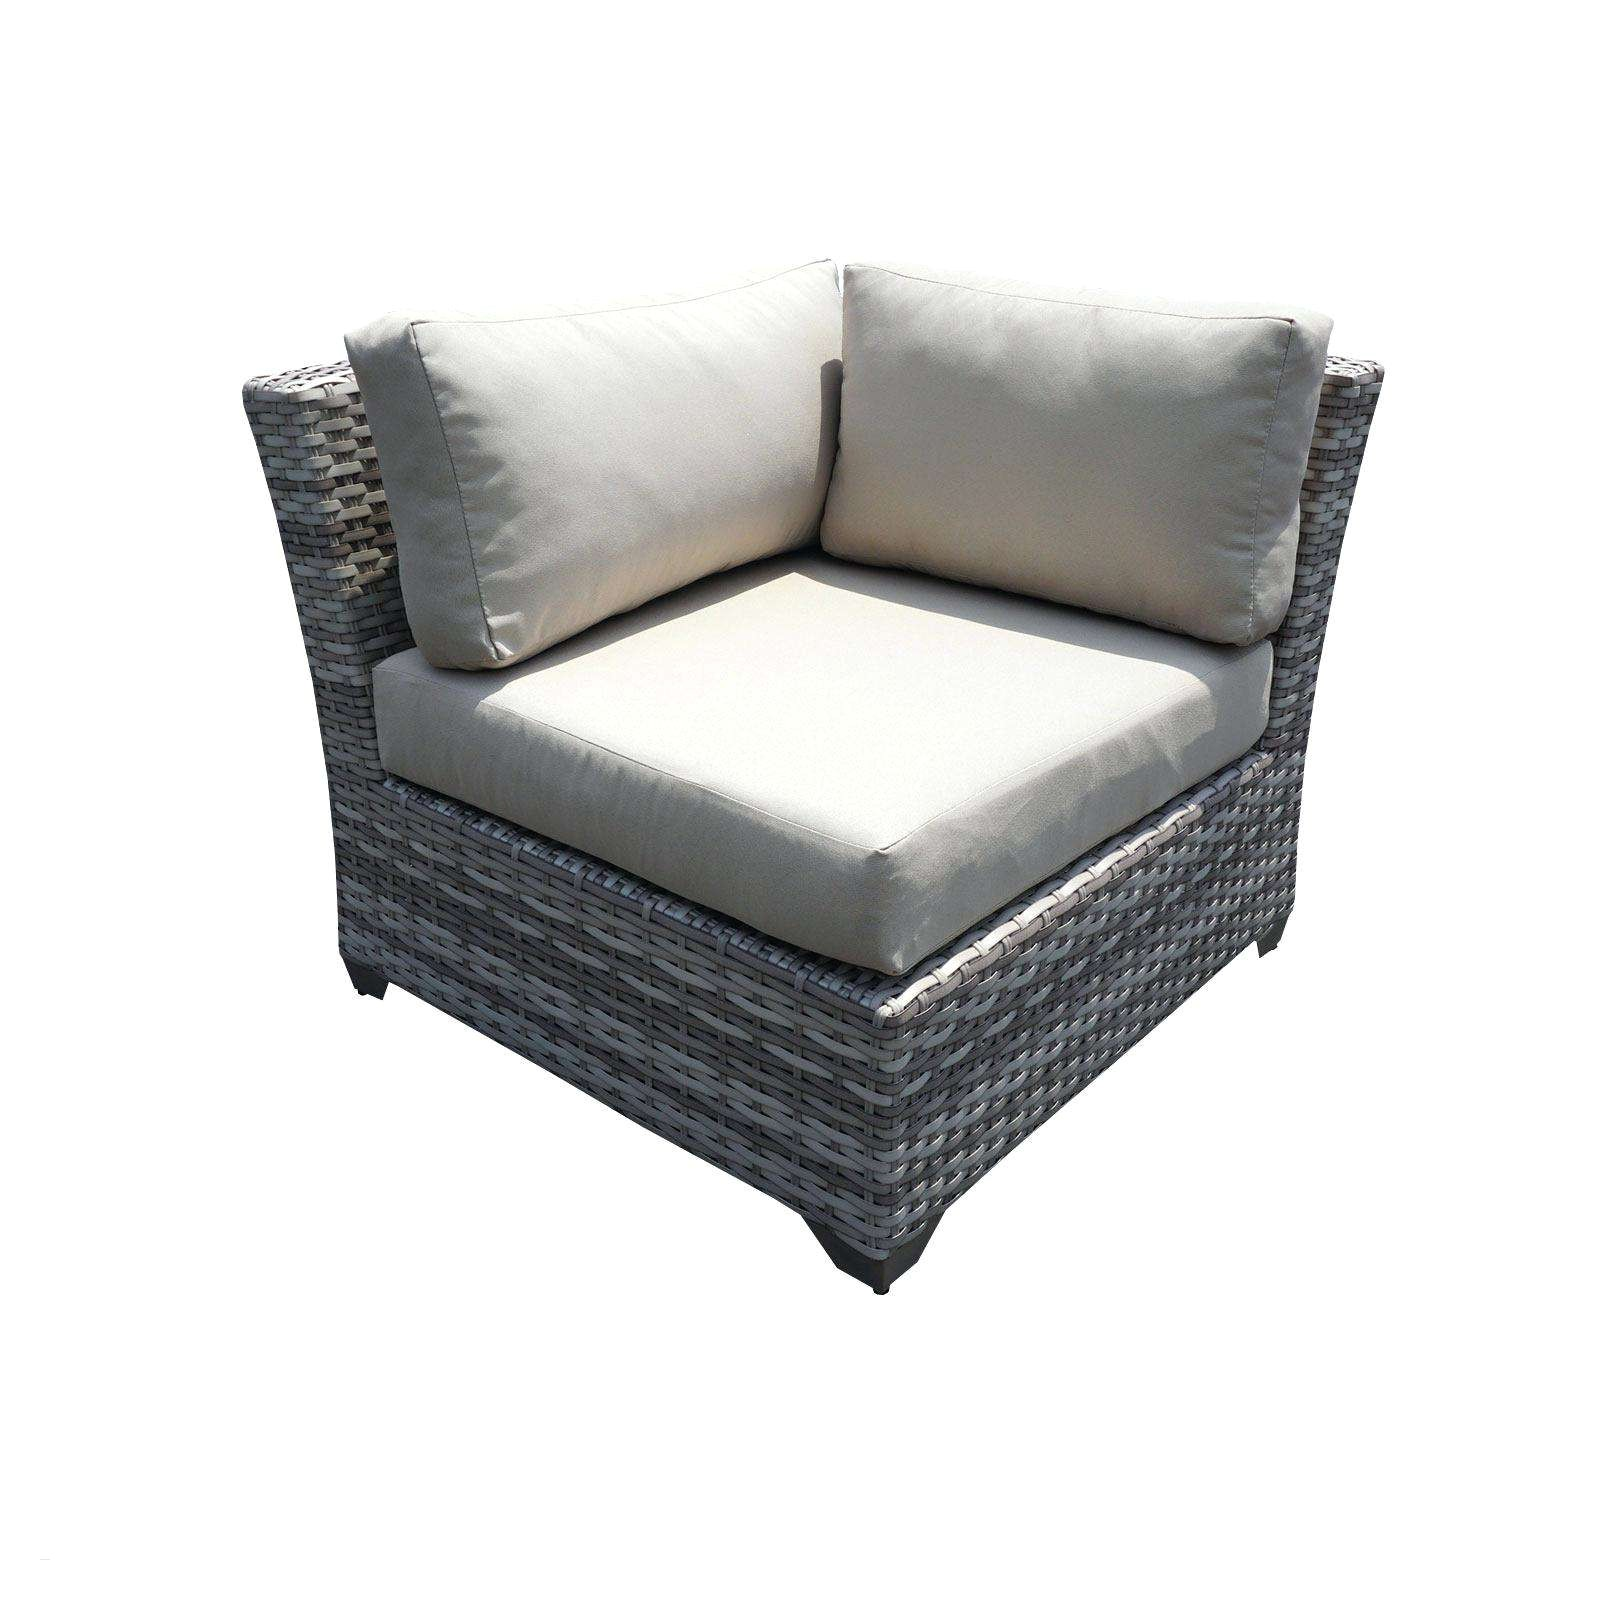 Ll Bean sofas and Chairs Outdoor Furniture for Sale New Wicker Outdoor sofa 0d Patio Chairs